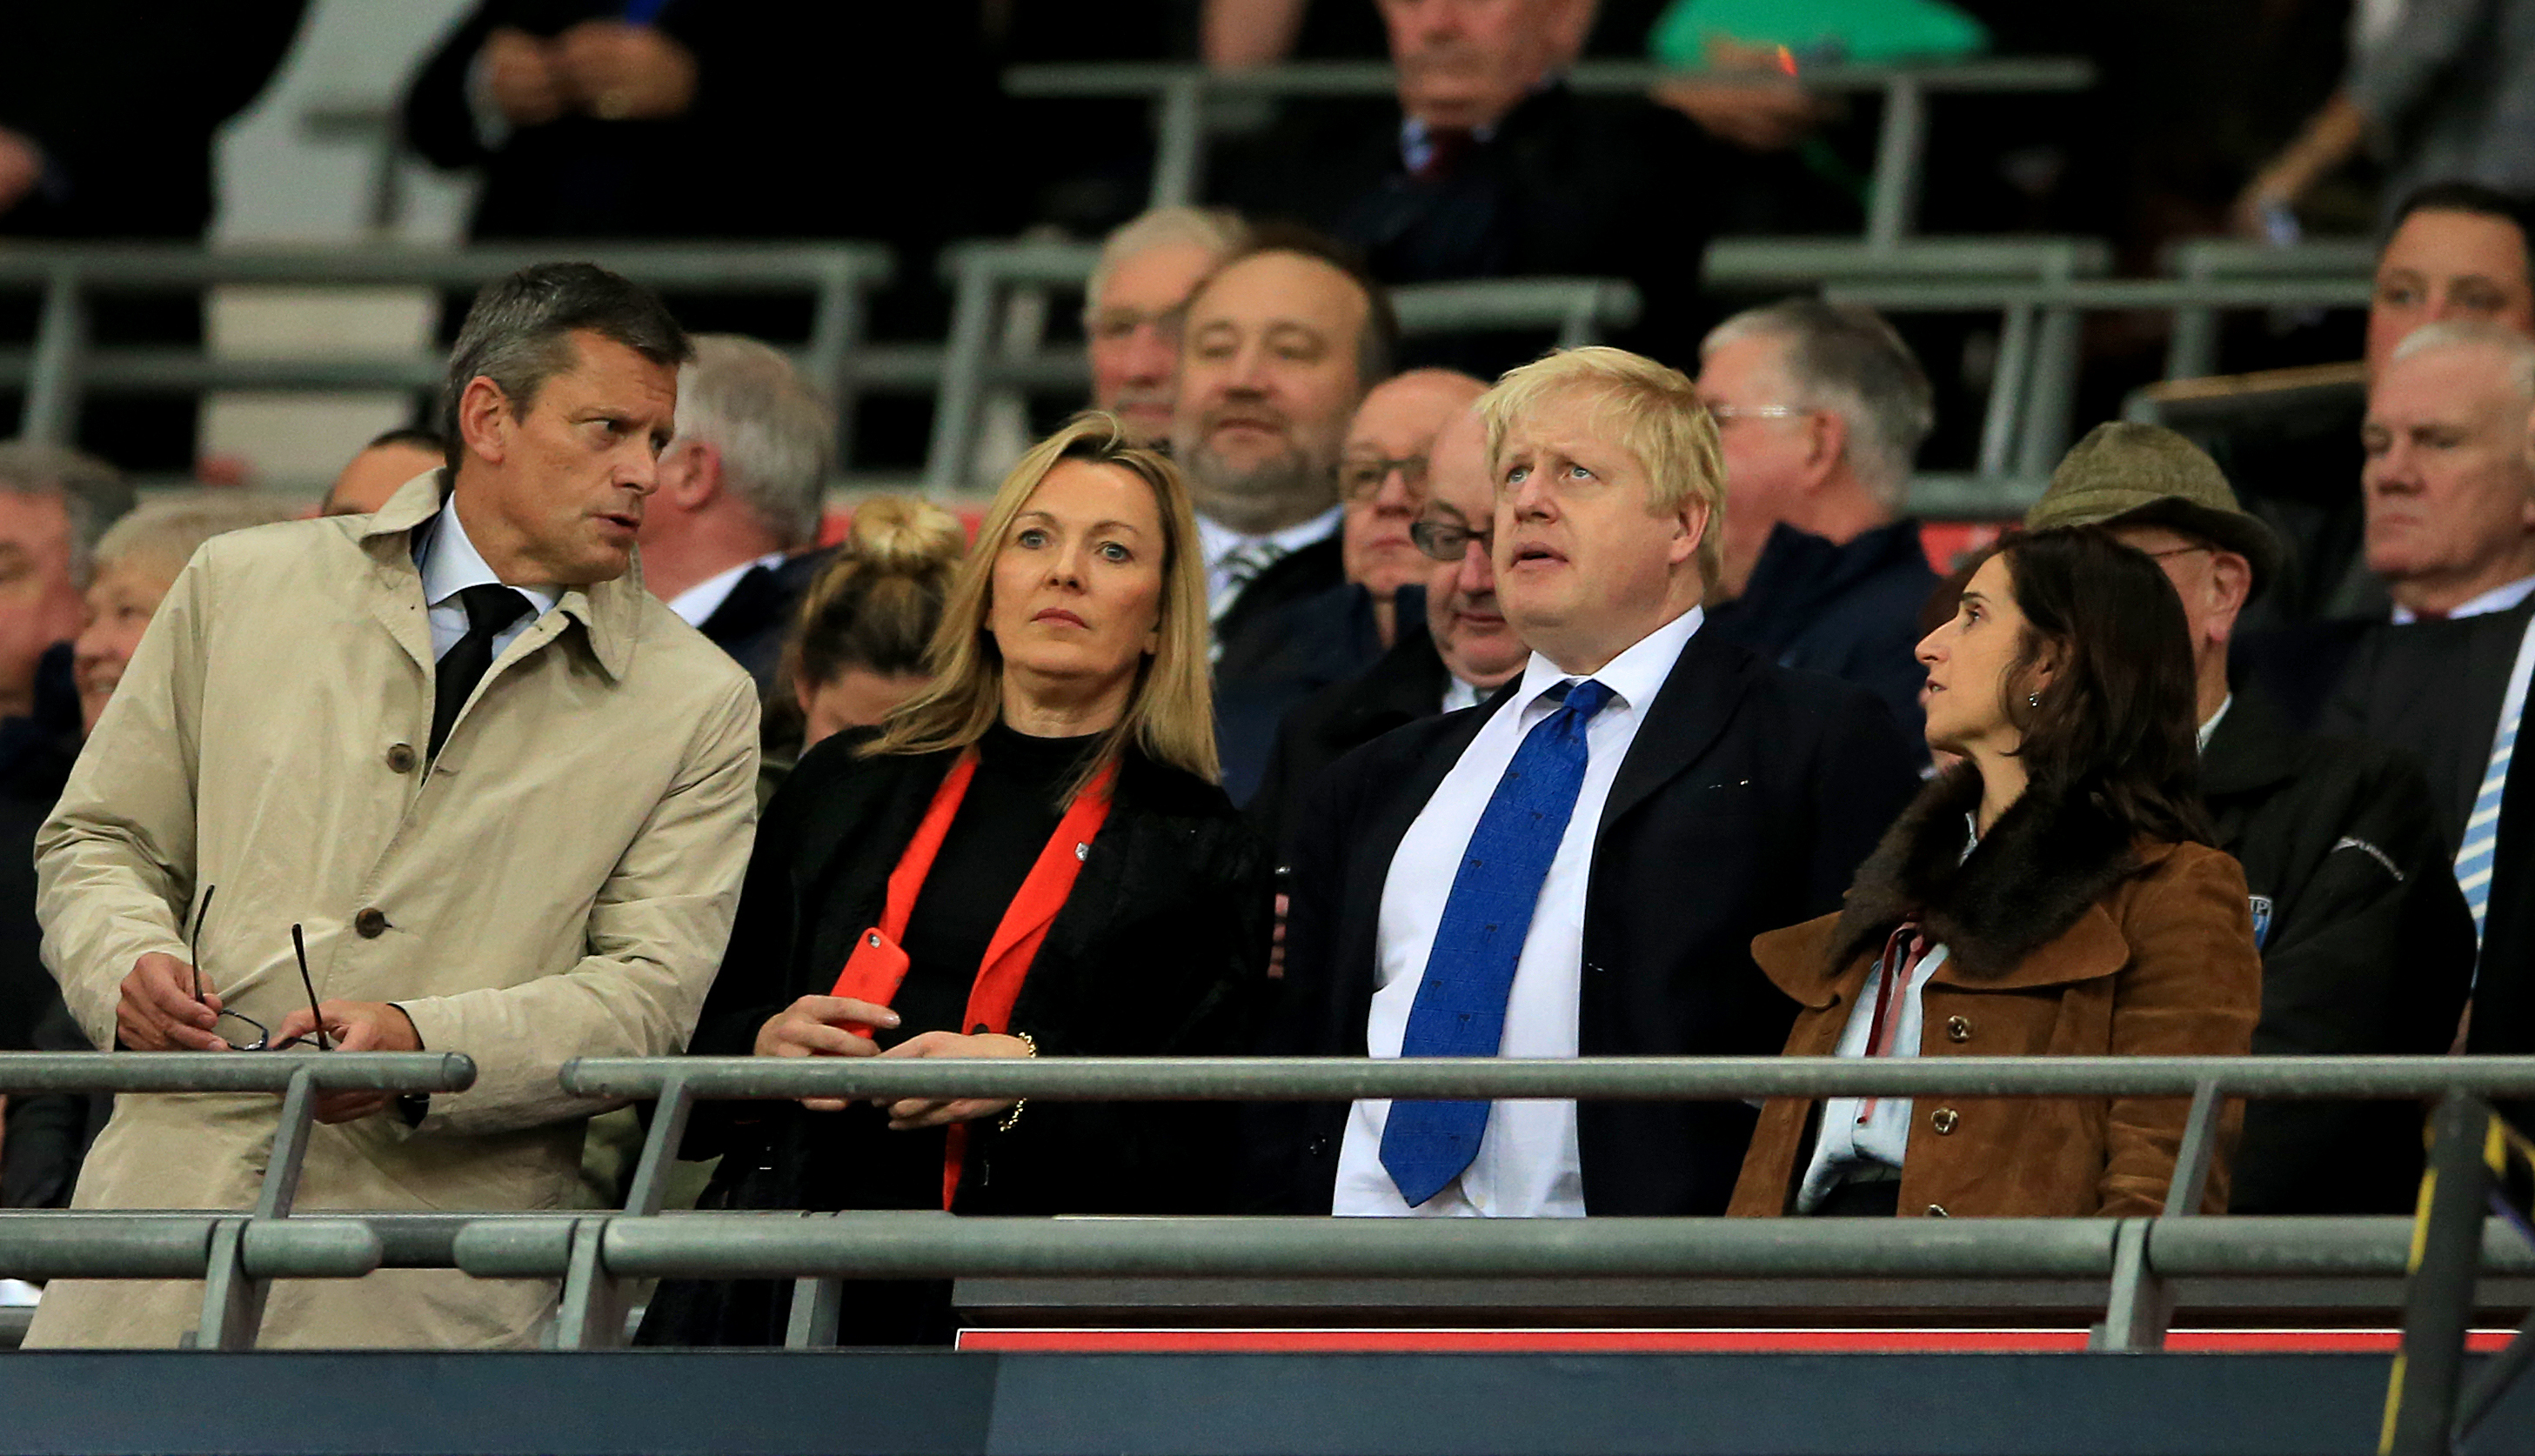 London Mayor Boris Johnson in the stands during the international friendly match at Wembley Stadium, London. PRESS ASSOCIATION Photo. Picture date: Tuesday November 17, 2015. See PA story SOCCER England. Photo credit should read: Nick Potts/PA Wire. RESTRICTIONS: Use subject to FA restrictions. Editorial use only. Commercial use only with prior written consent of the FA. No editing except cropping. Call +44 (0)1158 447447 or see paphotos.com/info for full restrictions and further information.